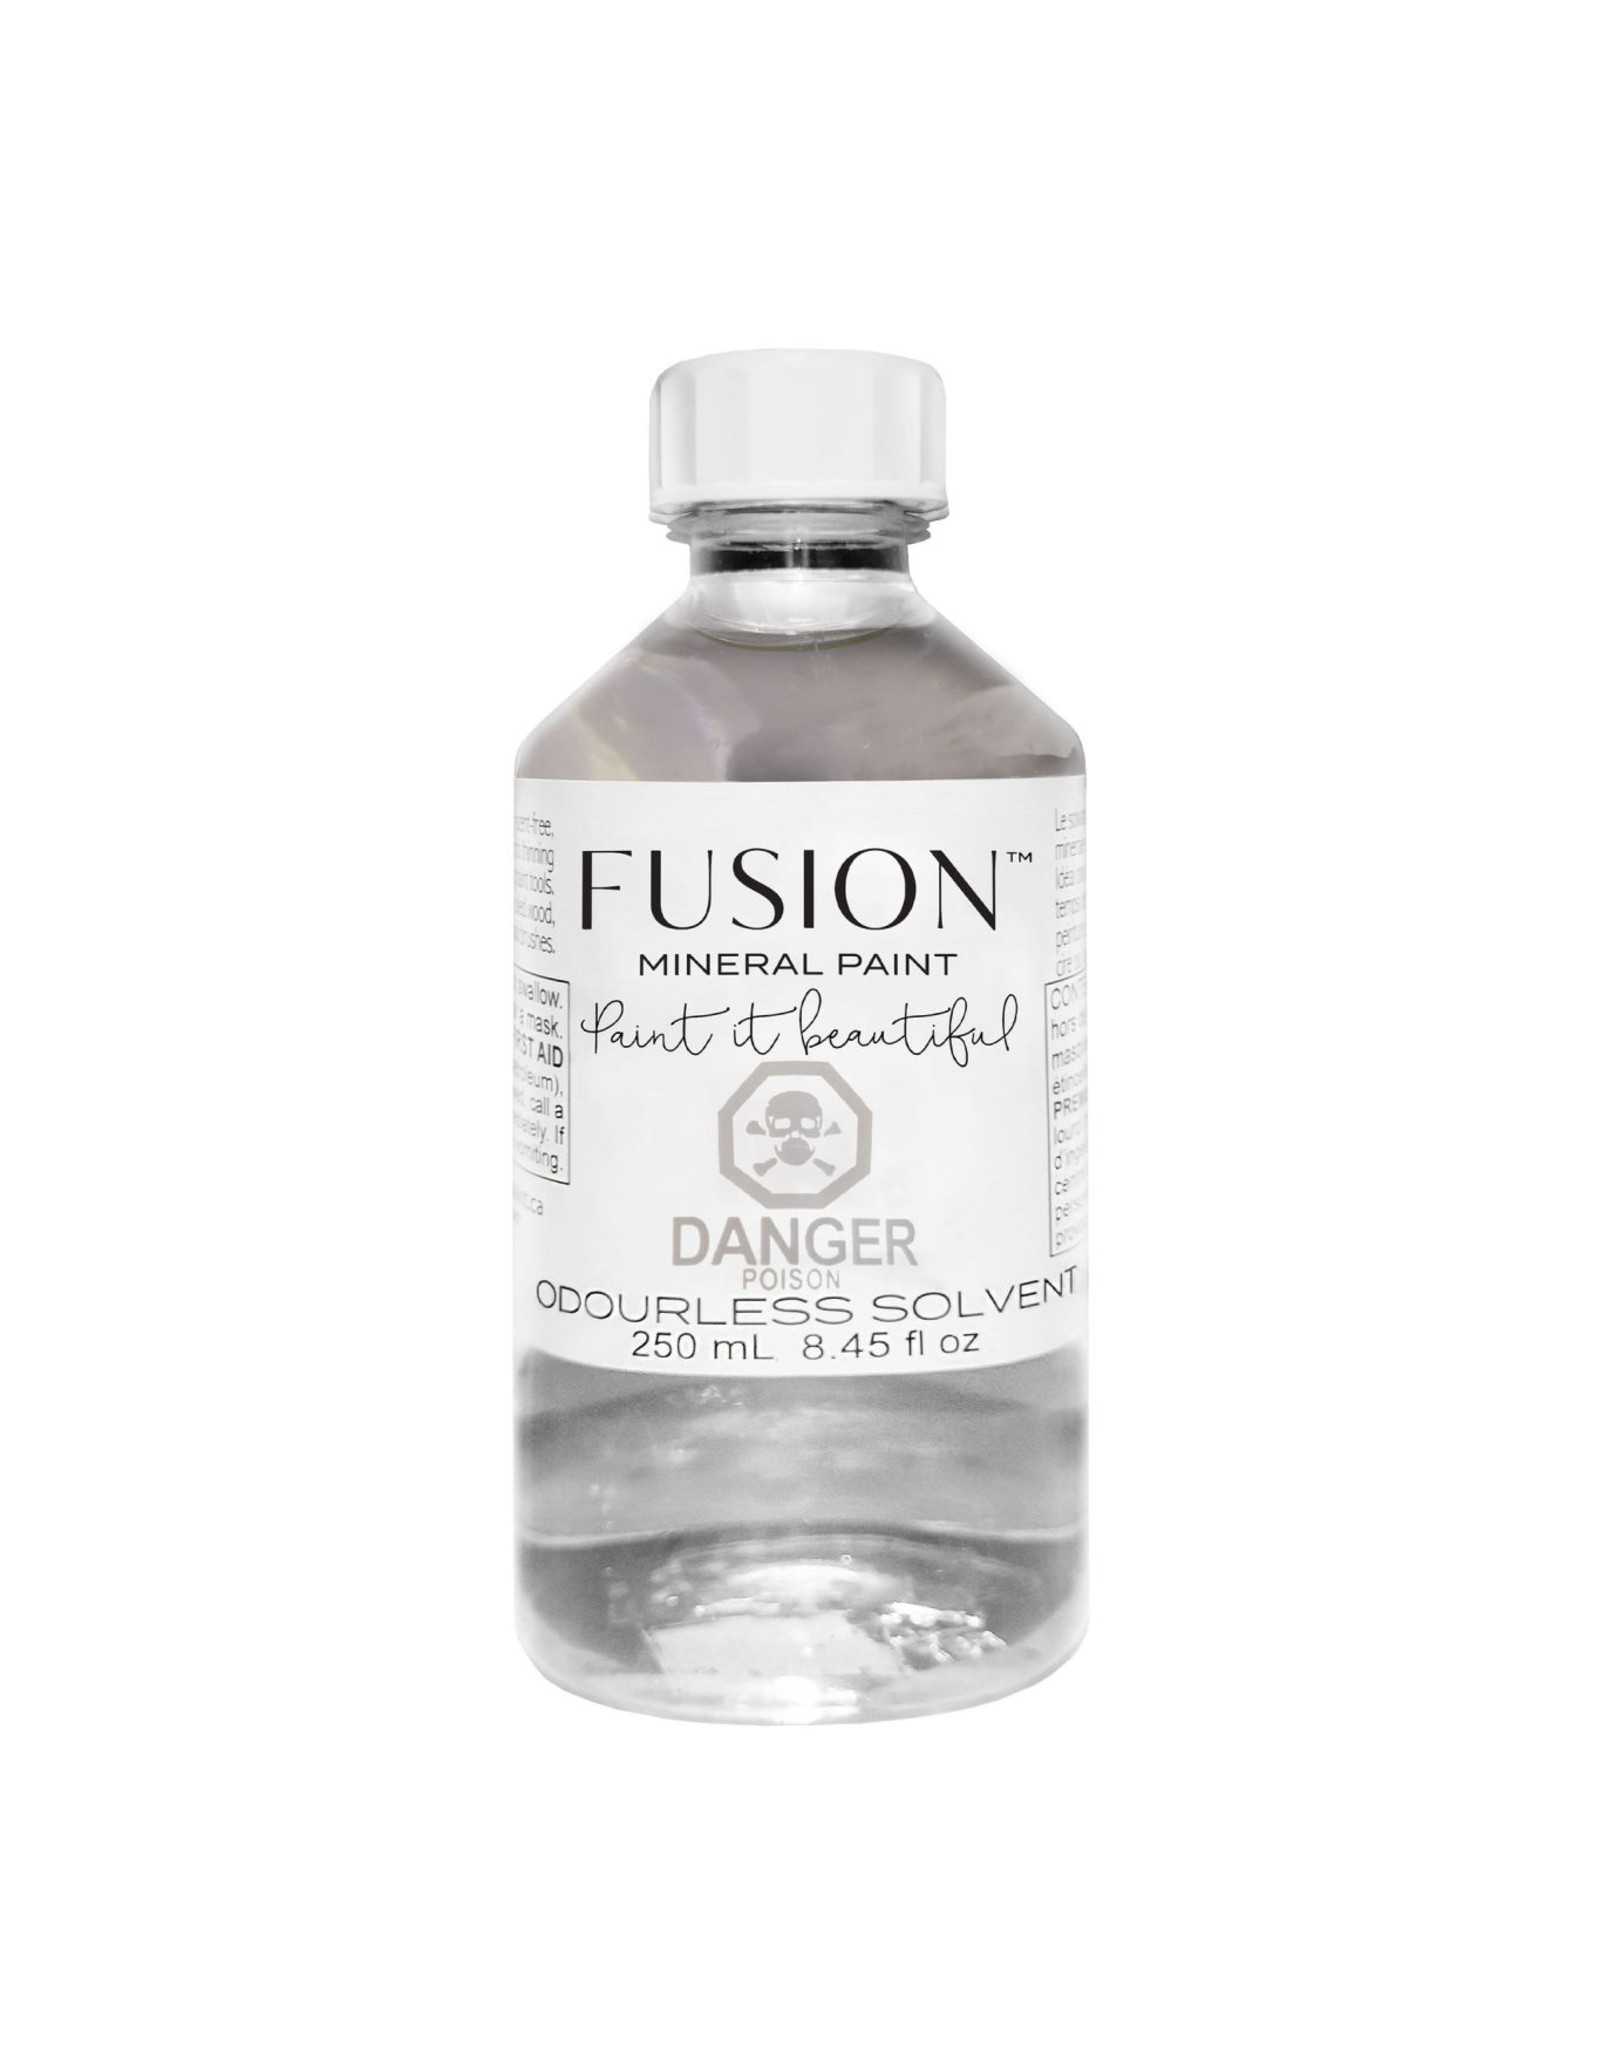 Fusion Mineral Paint Odourless Solvent